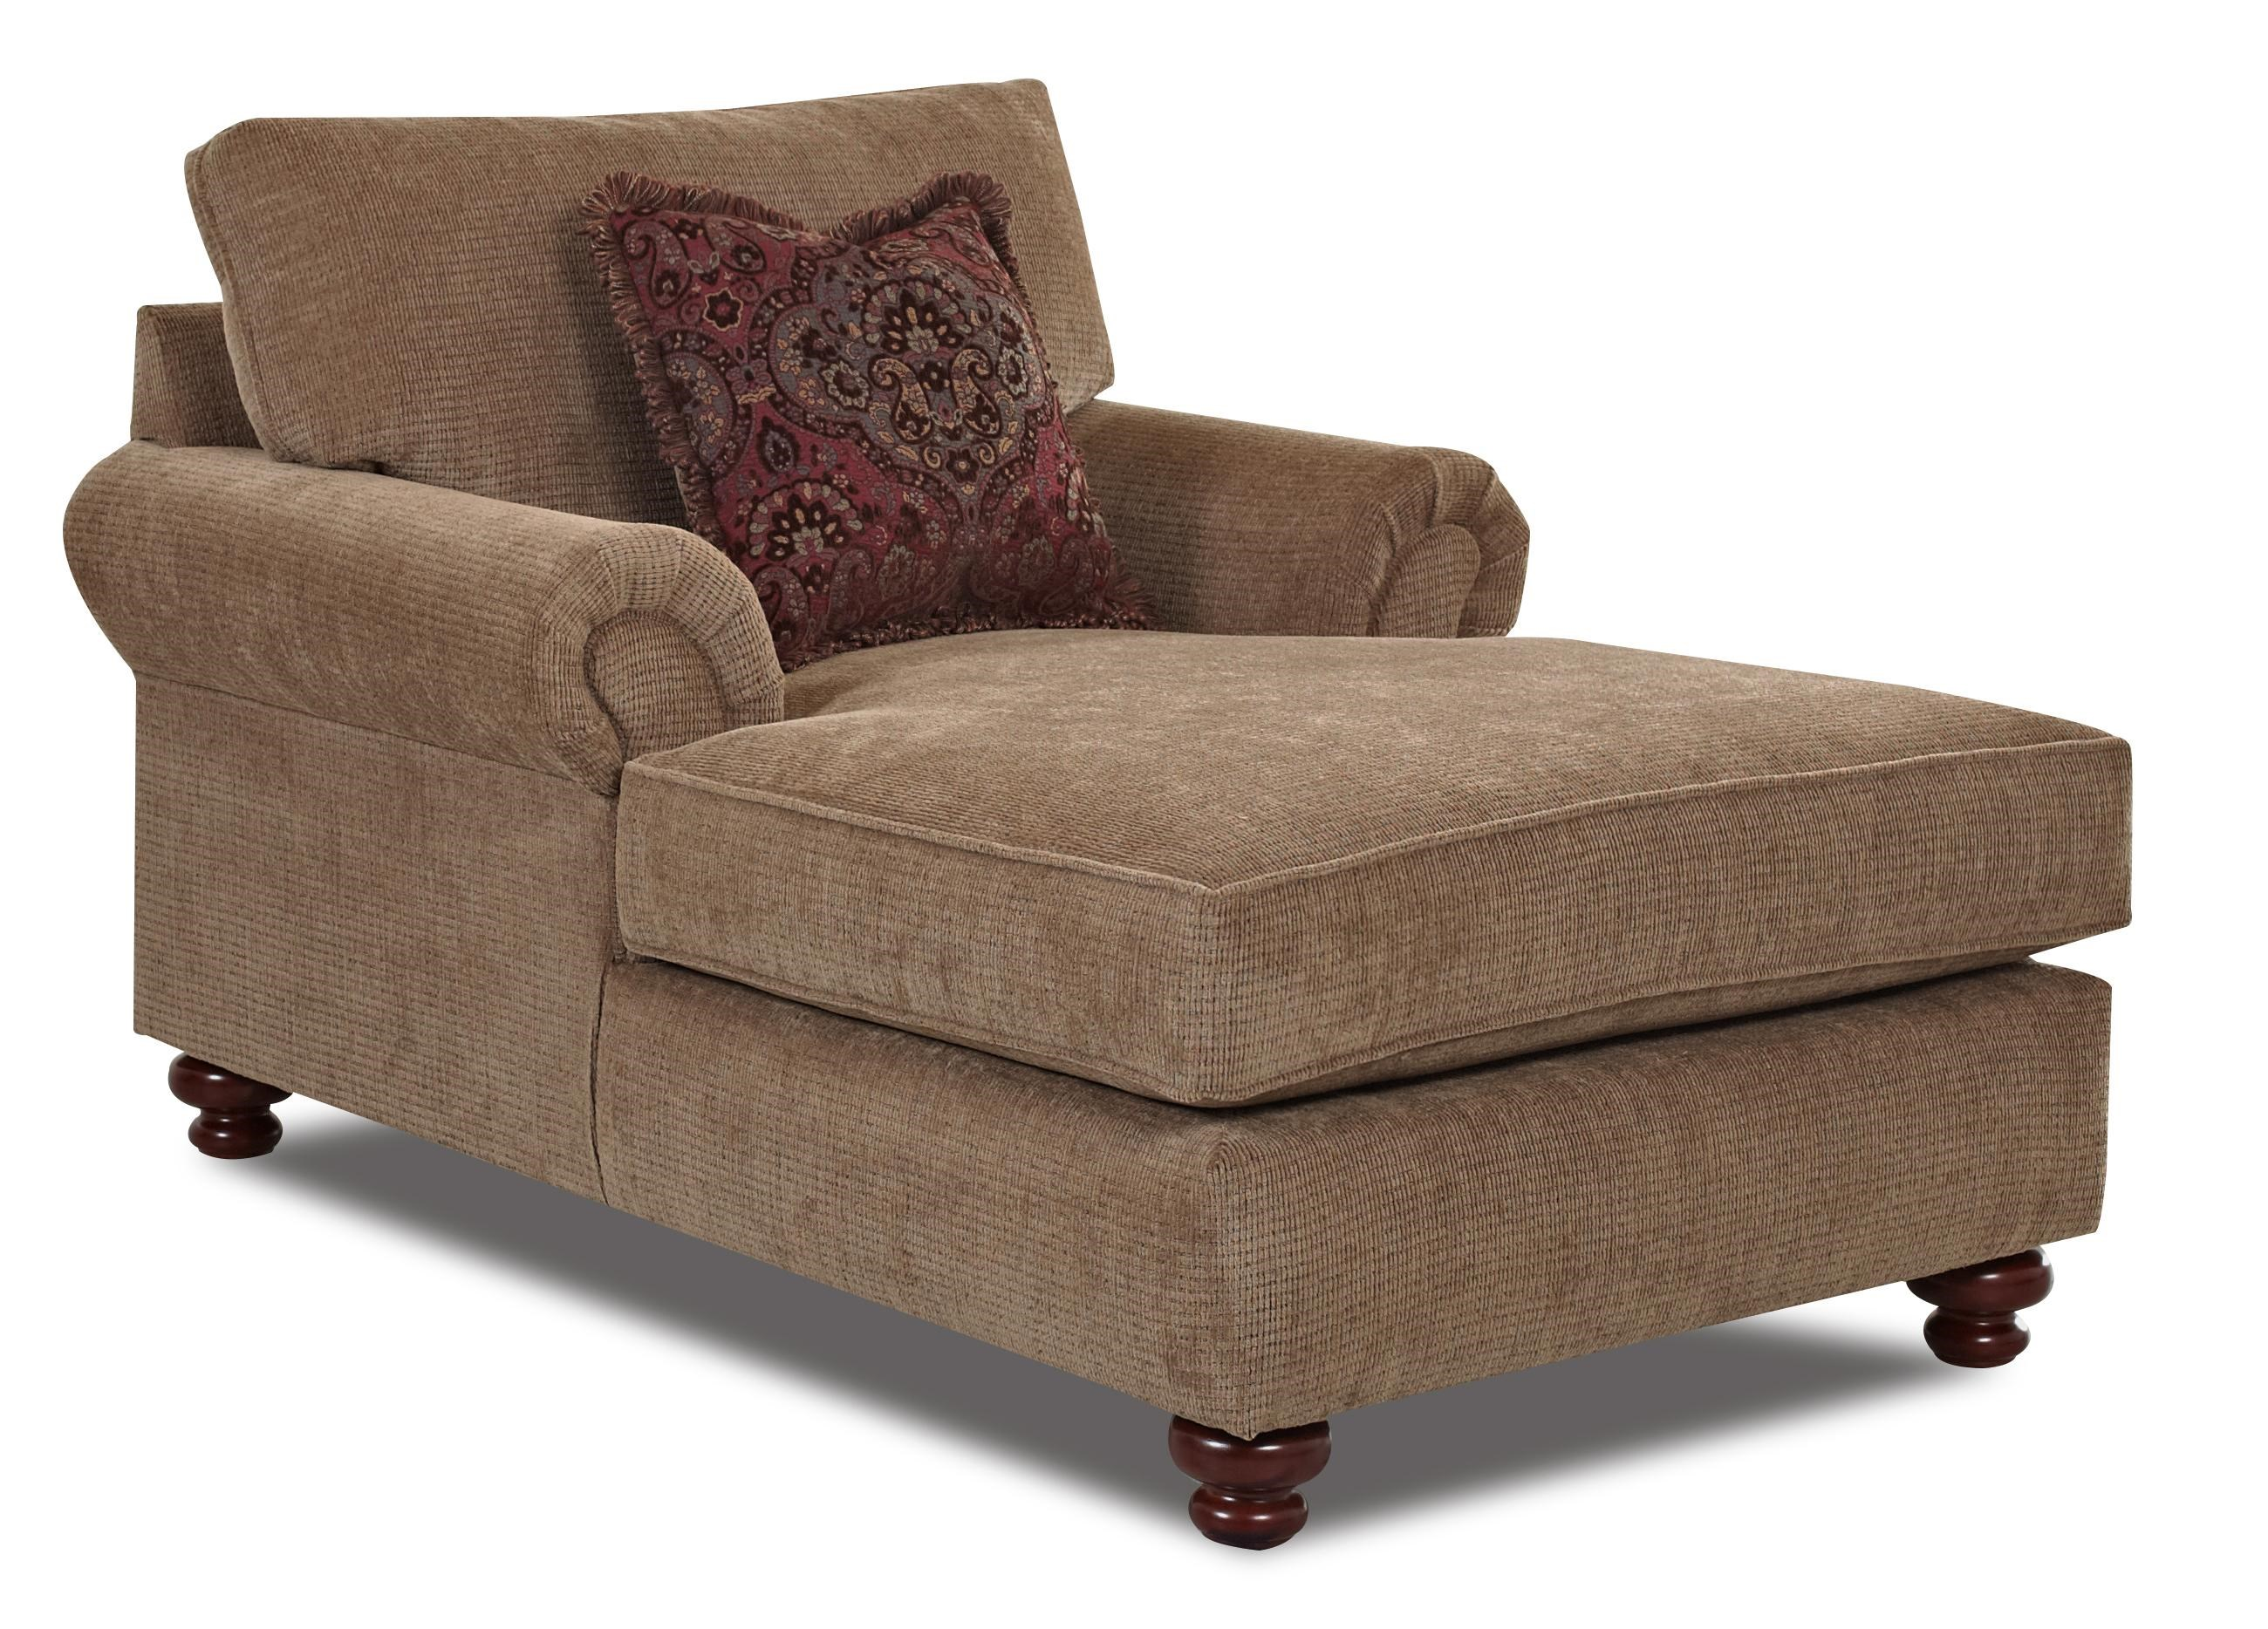 Klaussner Greenvale Traditional Chaise Lounge Value City